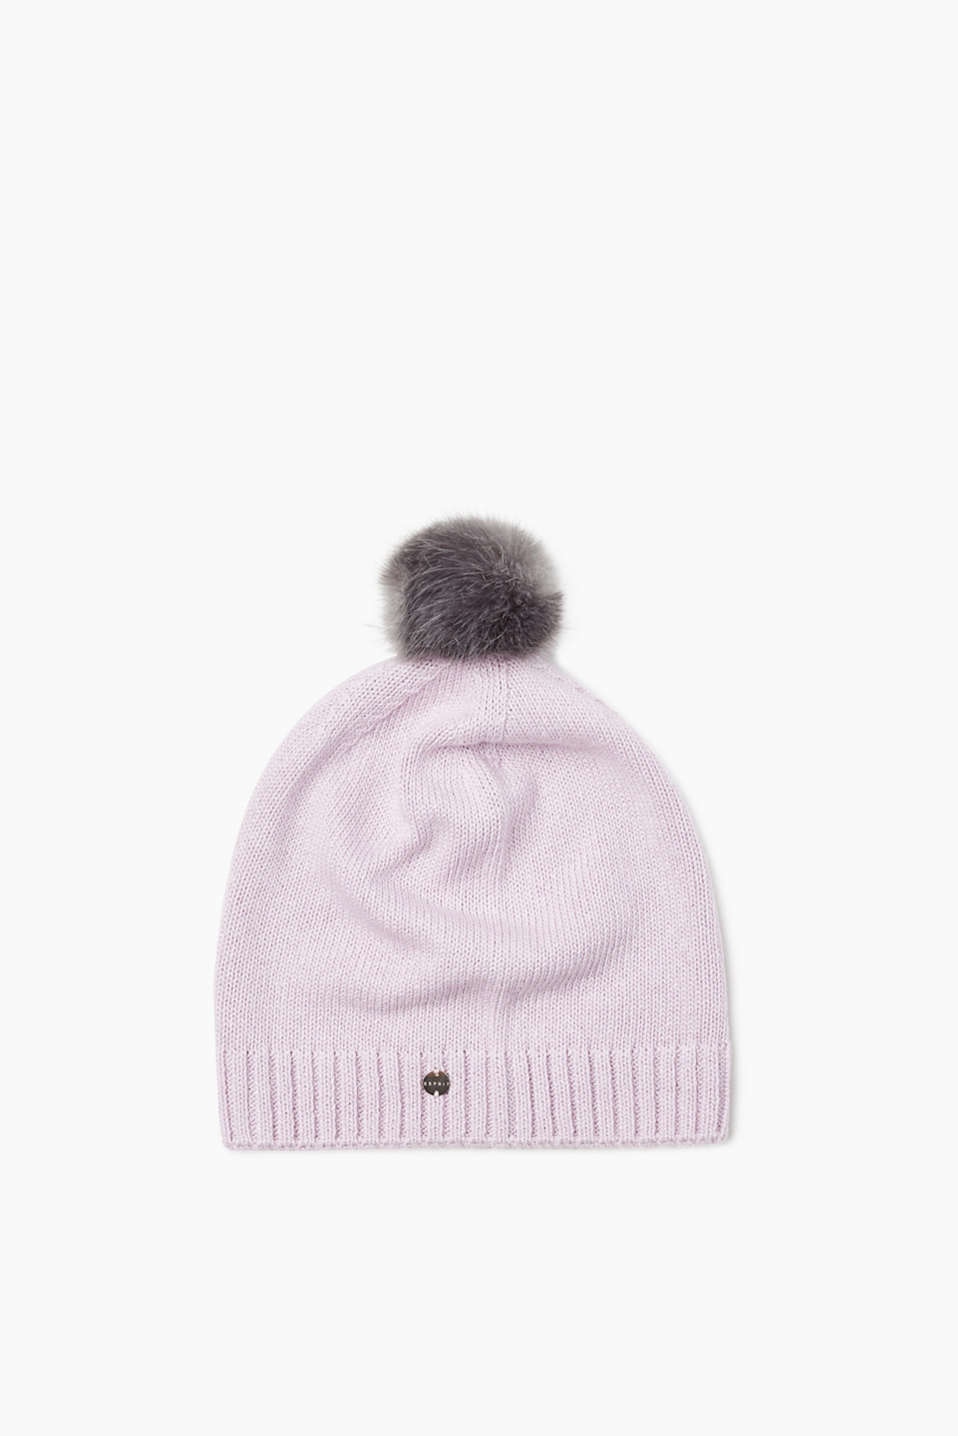 Warm and cool! The faux fur pompom makes this beanie extremely eye-catching.